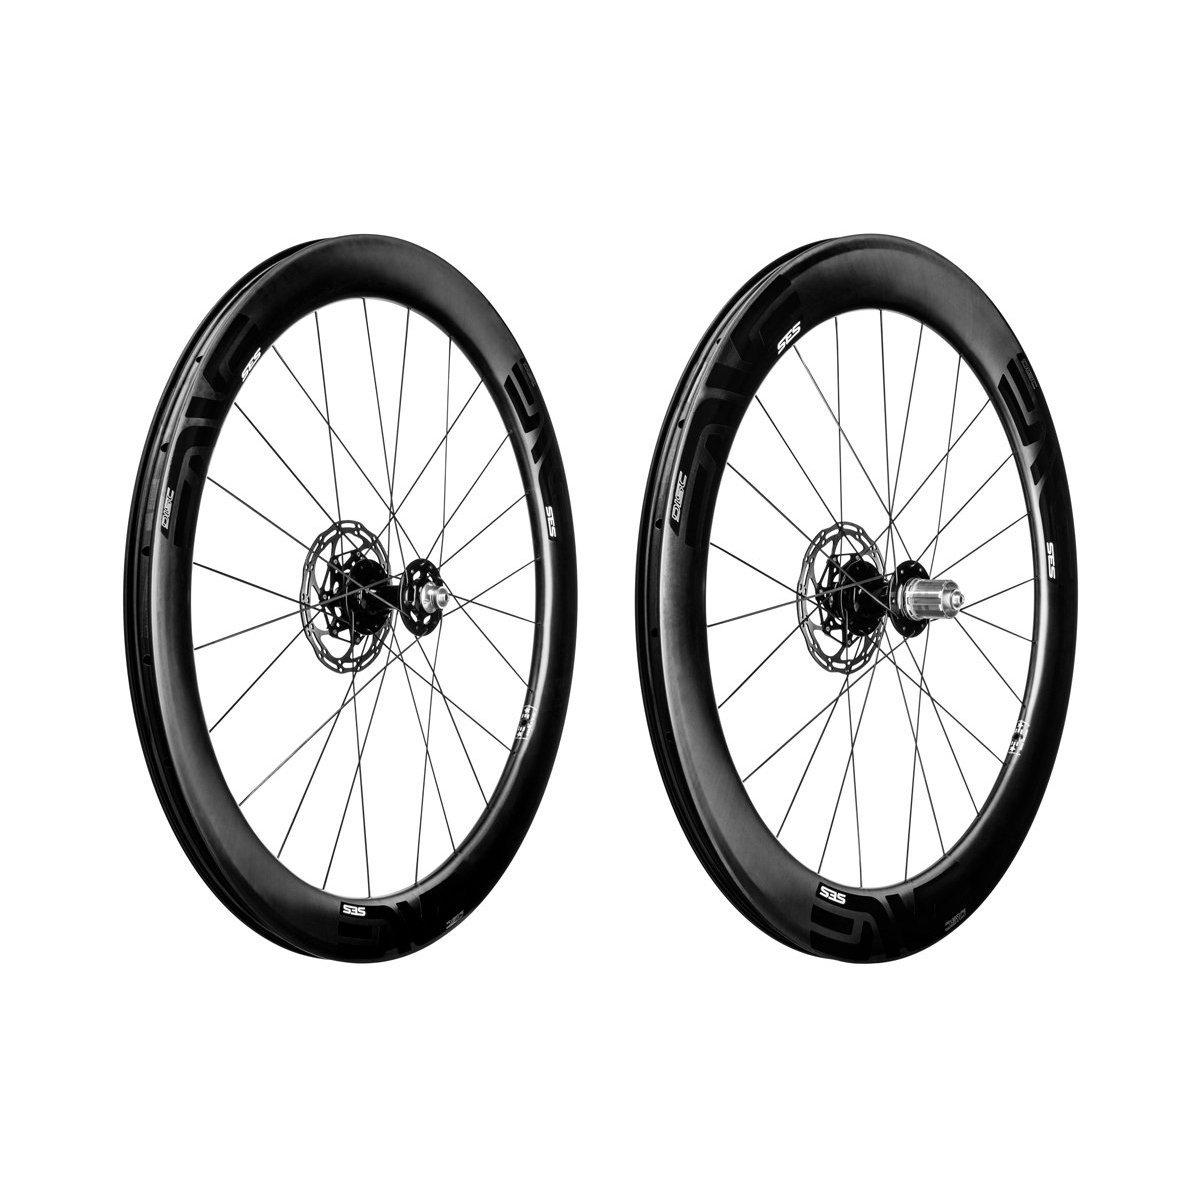 ENVE-ENVE SES 5.6 Disc Wheelset-ENVE Alloy Disc Black Hub-12/142 Clincher/Shimano-EN00561003109080-saddleback-elite-performance-cycling